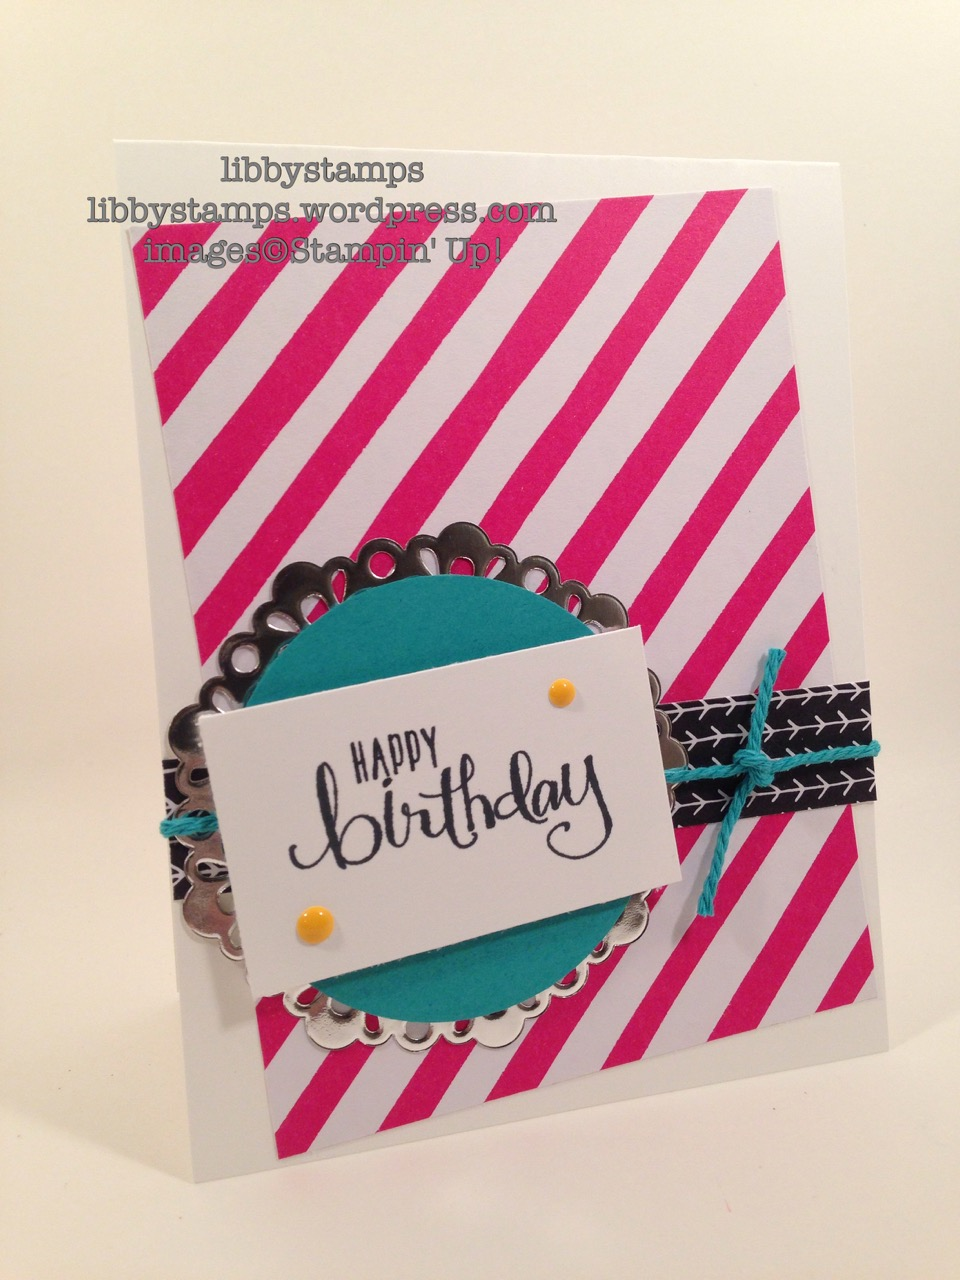 libbystamps, stampin up, All About Everything, It's My Party DSP, Metallic Foil Doilies, #allabouteverything, Card  Buffet